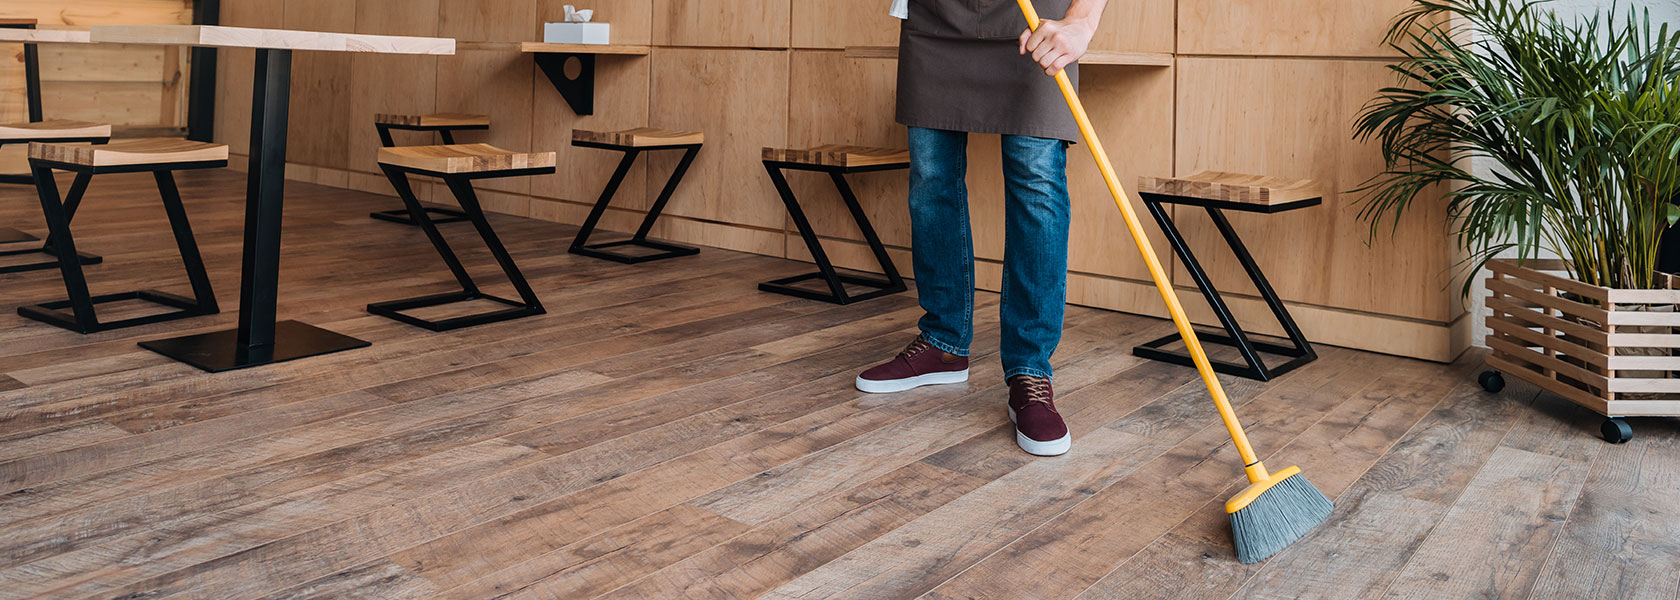 Restaurant Cleaning Services in Dubai